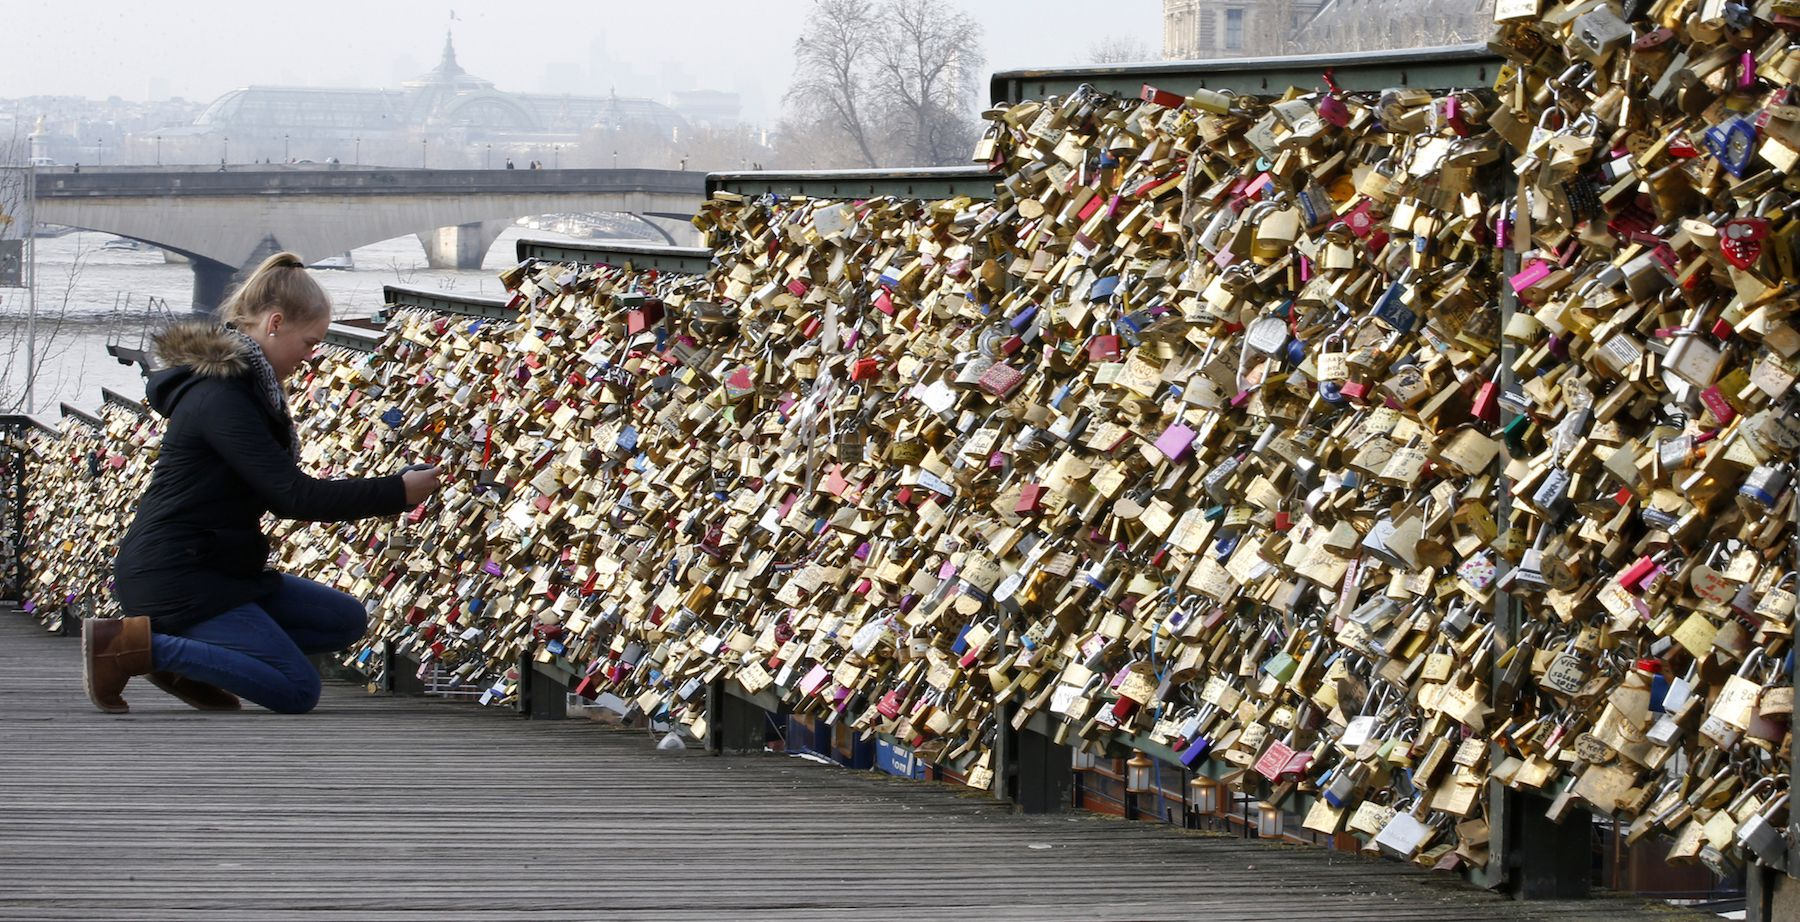 A tourist attaches a love lock on a fence on the access ramp to the Pont des Arts over the River Seine in Paris which is covered with thousands of padlocks January 20, 2015.    REUTERS/Charles Platiau (FRANCE - Tags: TRAVEL SOCIETY) - RTR4M6BW